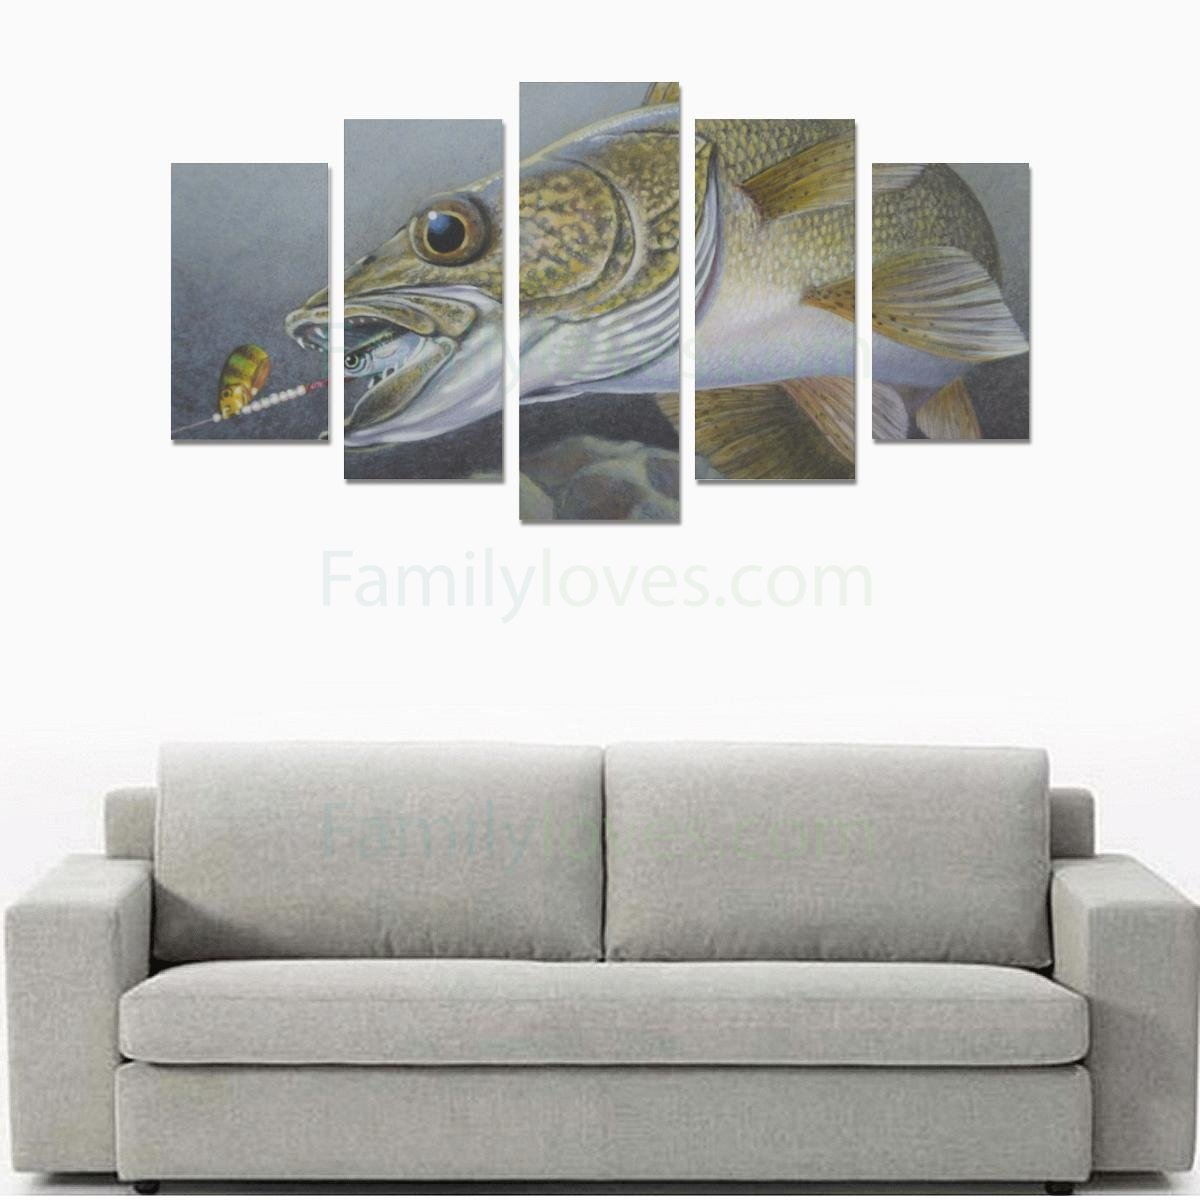 Buy Fly fishing wall art - Familyloves hoodies t-shirt jacket mug cheapest free shipping 50% off